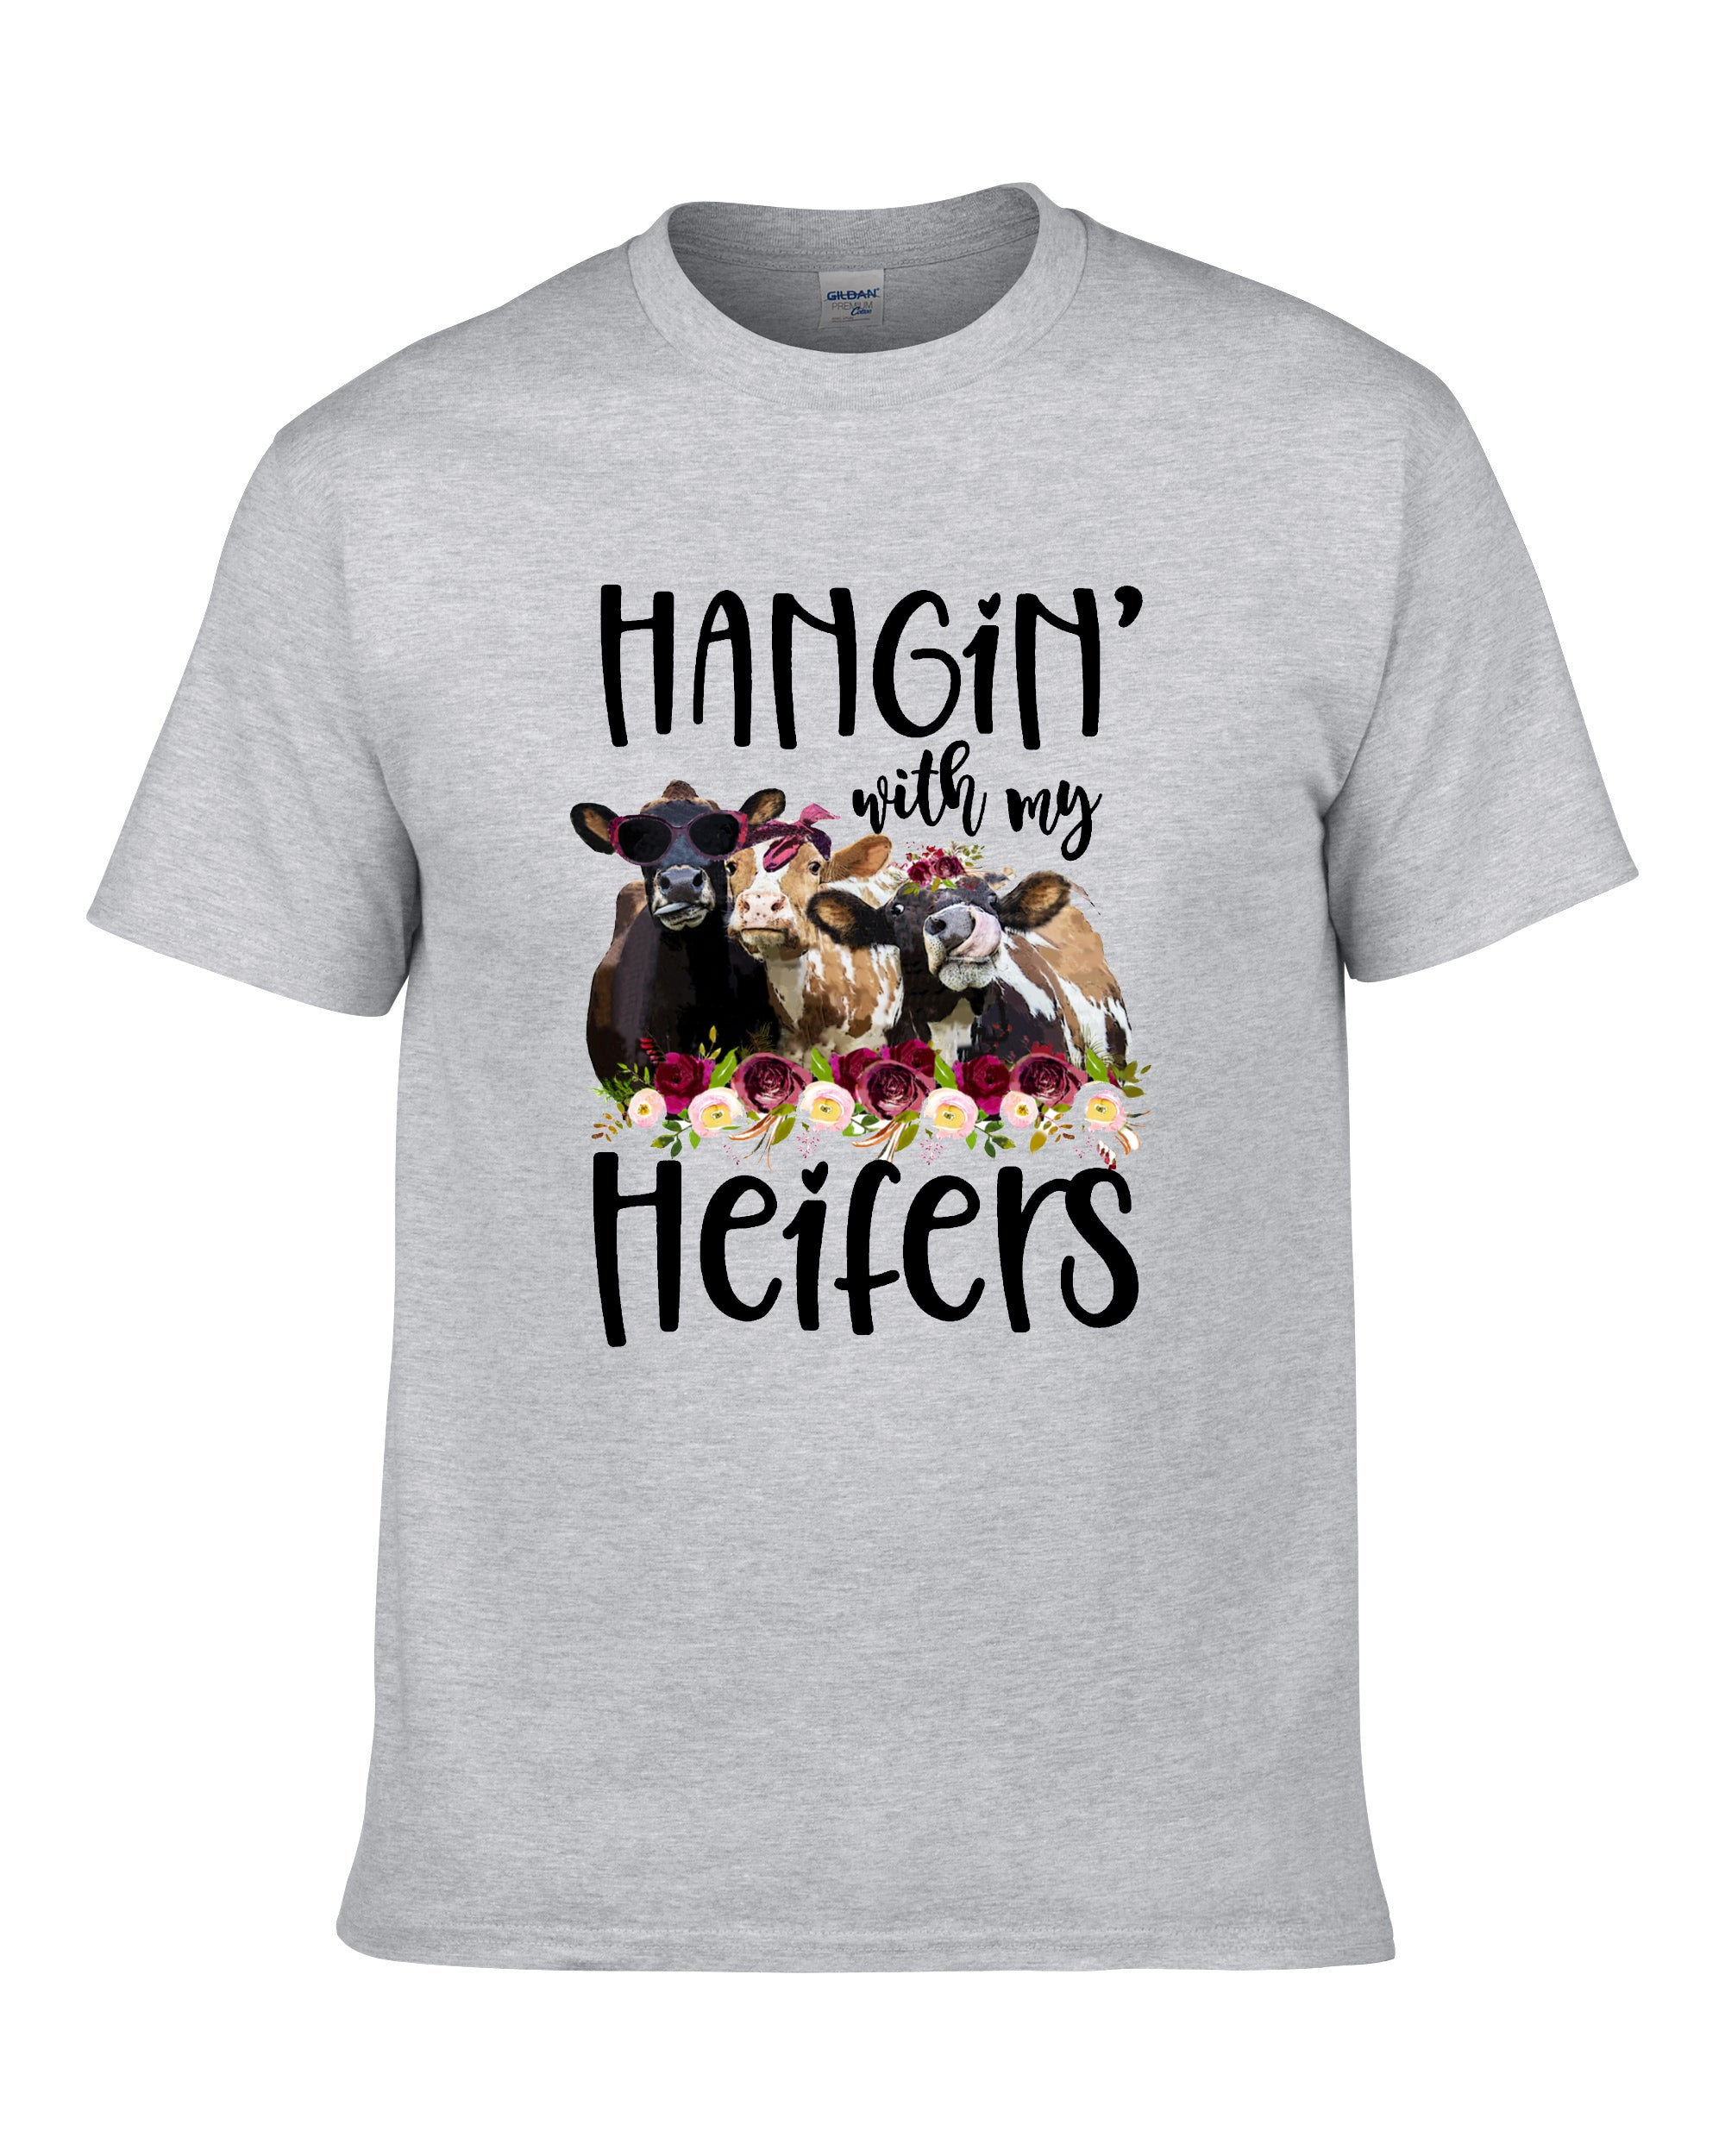 Hanging With My Heifers T-Shirt